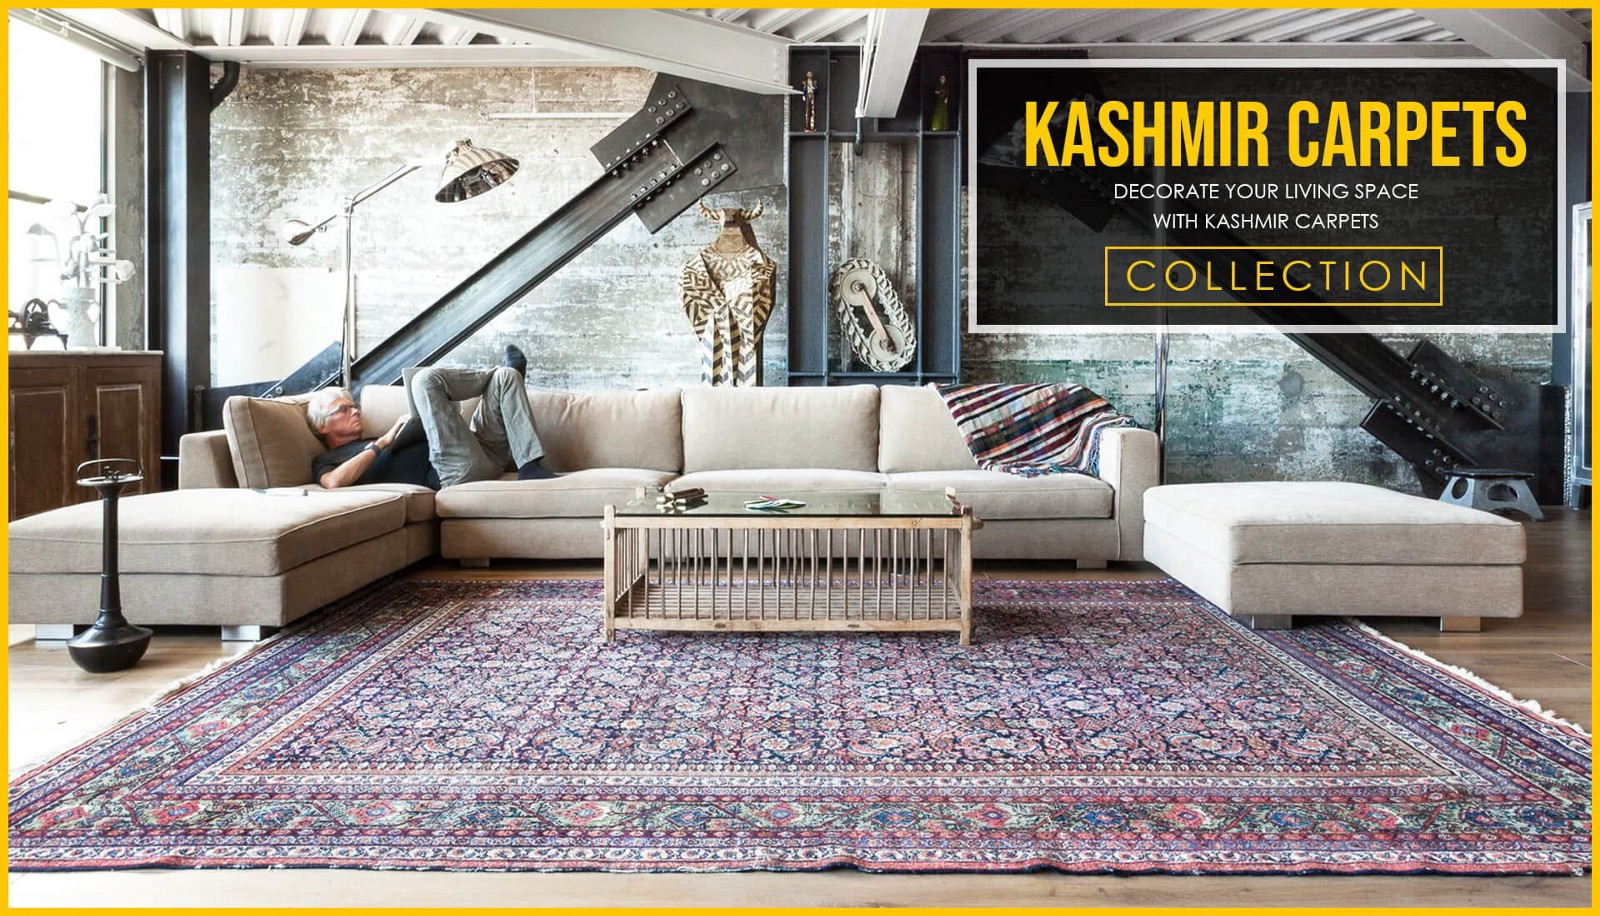 The Kashmiri Carpet Has Its History Around World And It Is Famous For Rich Unique Designs As A Treasure